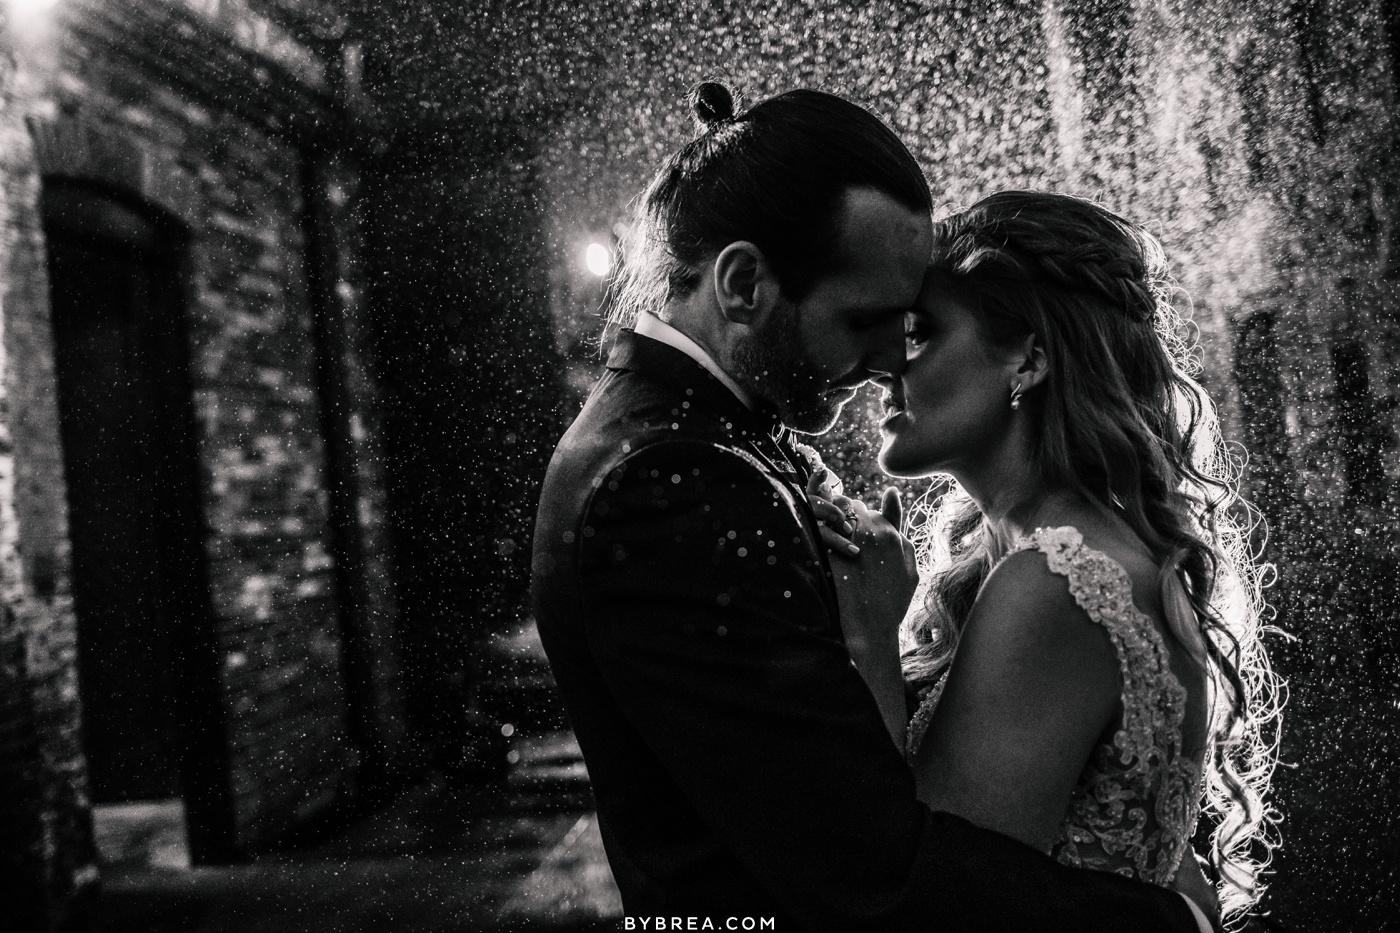 romantic rainy night shot at mt washington mill dye house wedding